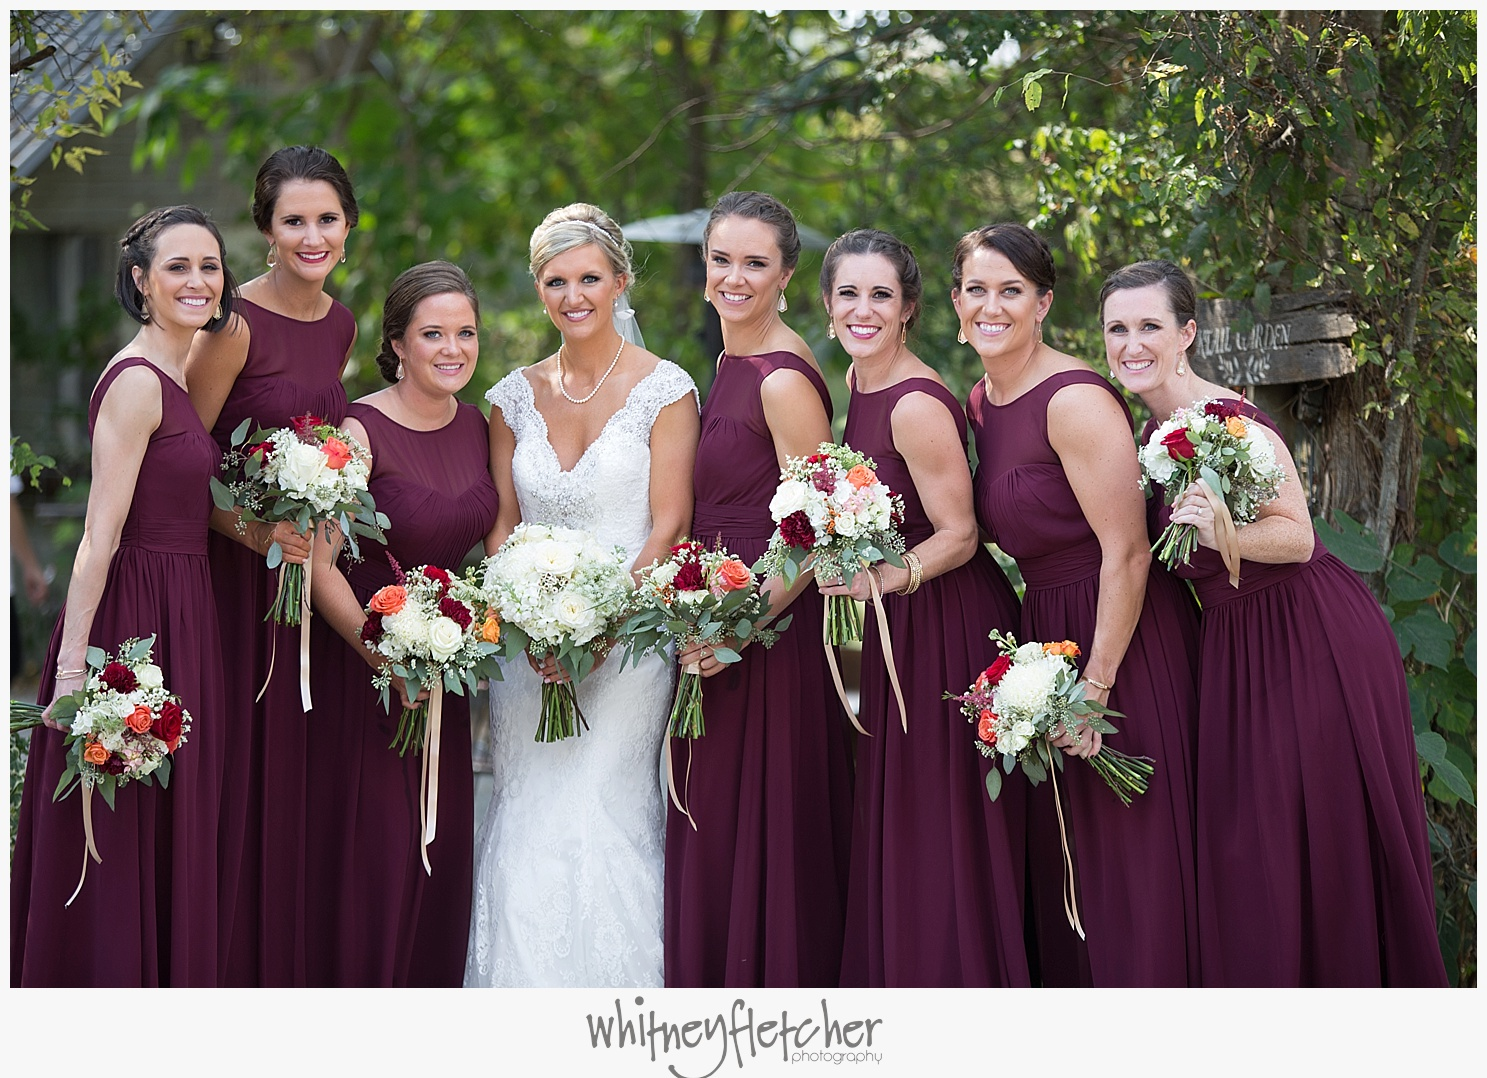 weddings-at-meadow-hill-farm14